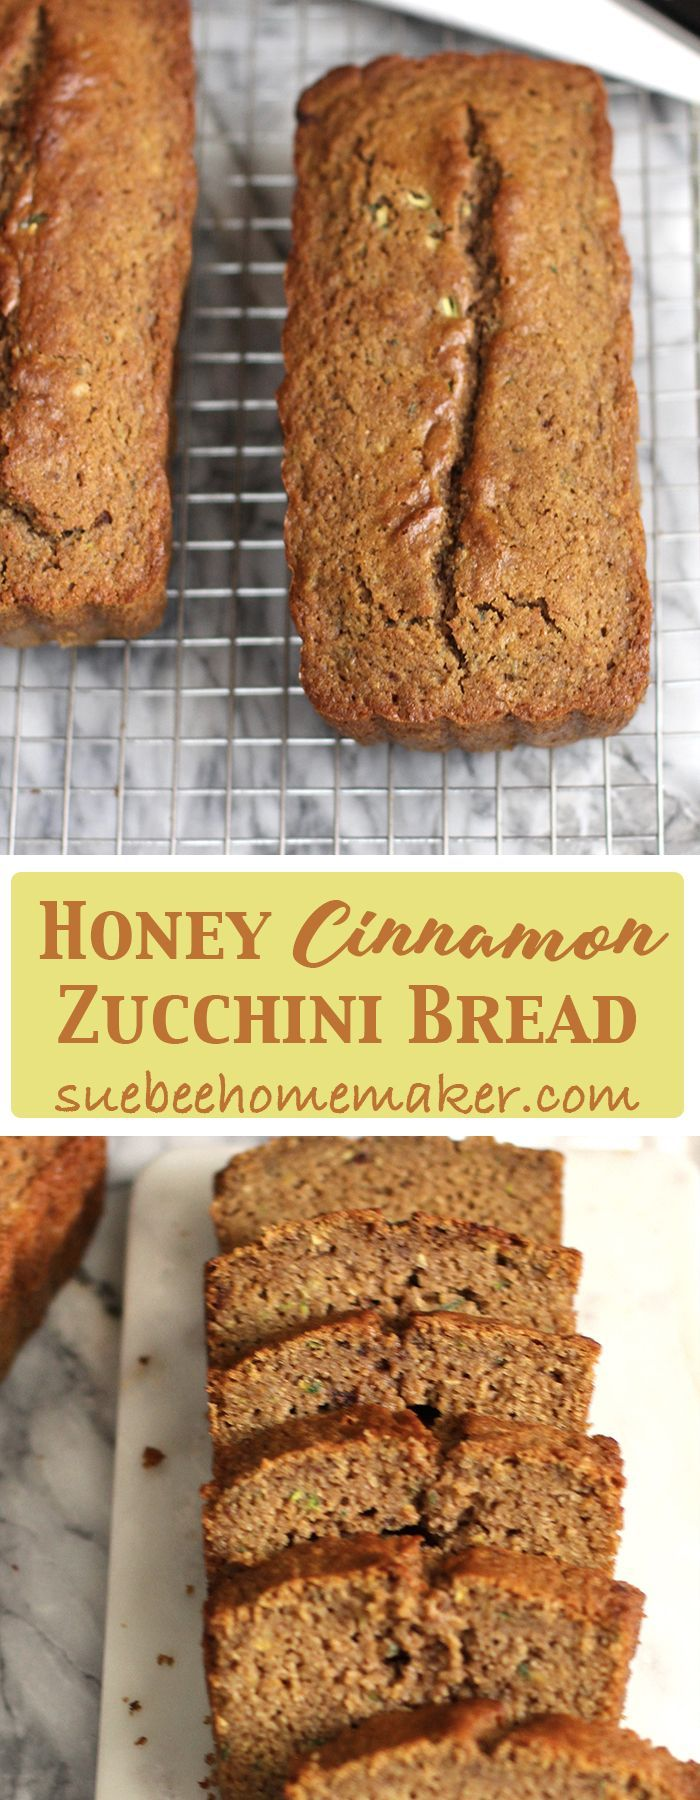 Honey Cinnamon Zucchini Bread uses zucchini to moisten a honey cinnamon flavored bread - to make the most interesting and delicious quick bread!